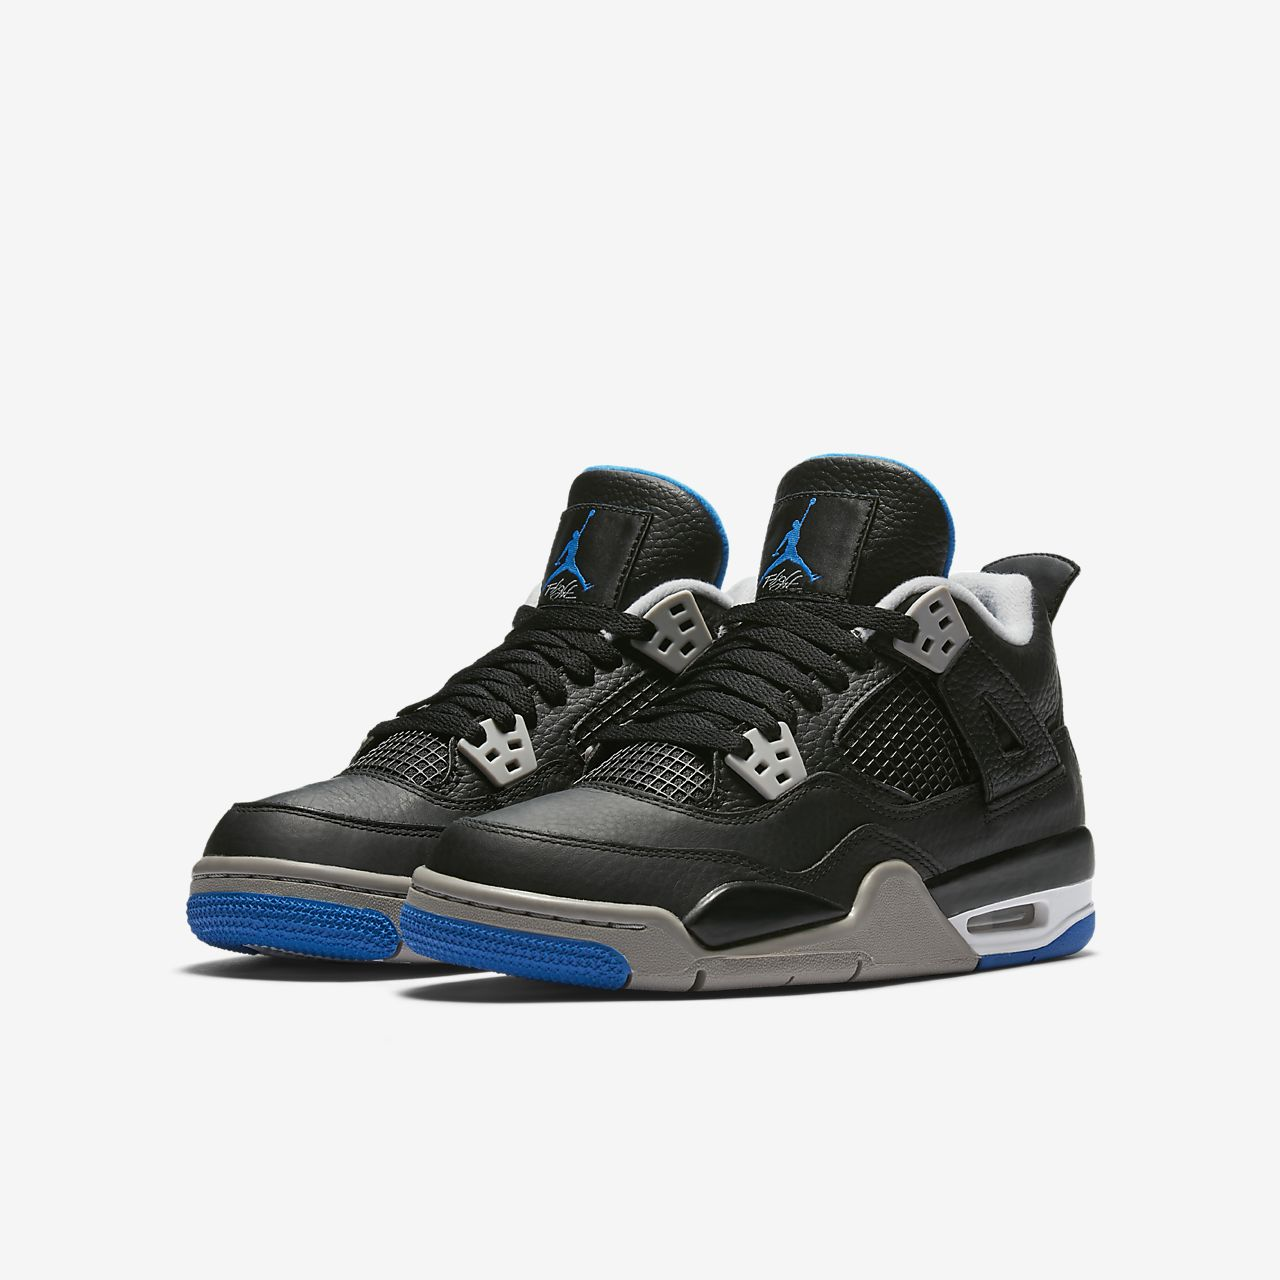 jordan 4 retro. air jordan 4 retro big kids\u0027 (boys\u0027) shoe